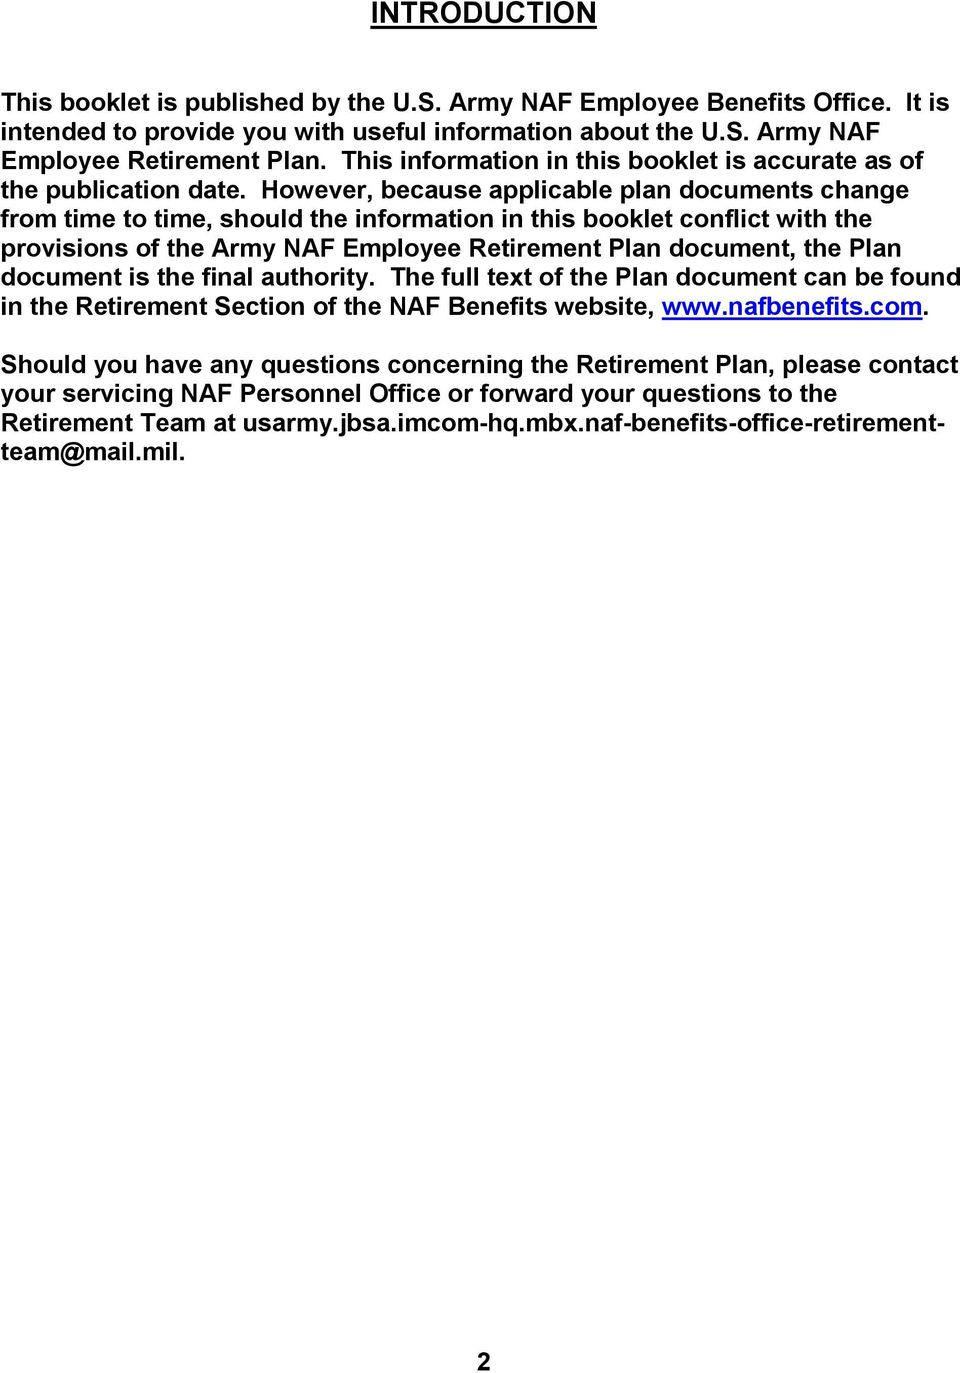 However, because applicable plan documents change from time to time, should the information in this booklet conflict with the provisions of the Army NAF Employee Retirement Plan document, the Plan